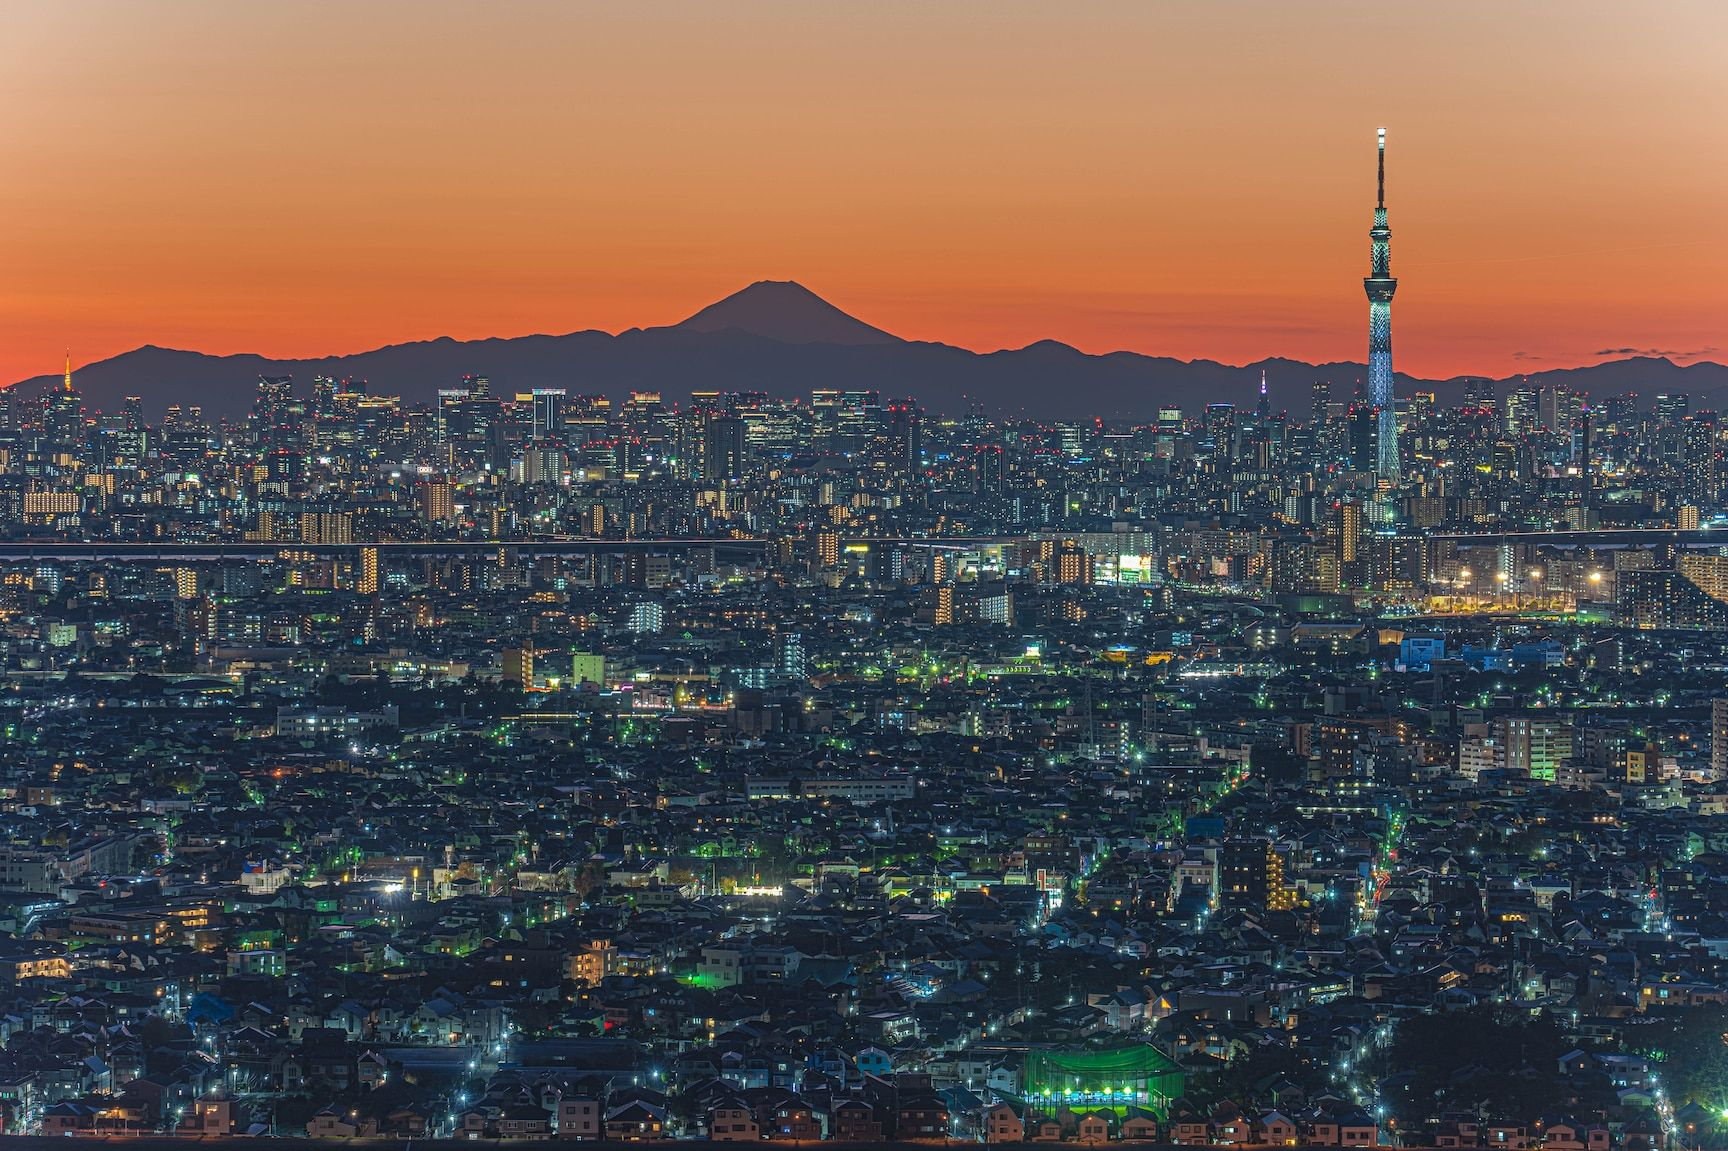 This photo taken by Sosuke Yamaki. . . . . . #PASHADELIC #絶景delic . #日本の絶景 #千葉 #chiba #tokyoskytree #magichour . . #sony #ilce7m3 #igers #instagood #photooftheday #photography #nature #natureshots #nature_shooters #naturephotography #landscape #beautifulview #Japan_daytime_view #japan #japantravel #japantrip #instajapan #IG_JAPAN #photo_jpn #photo_travelers